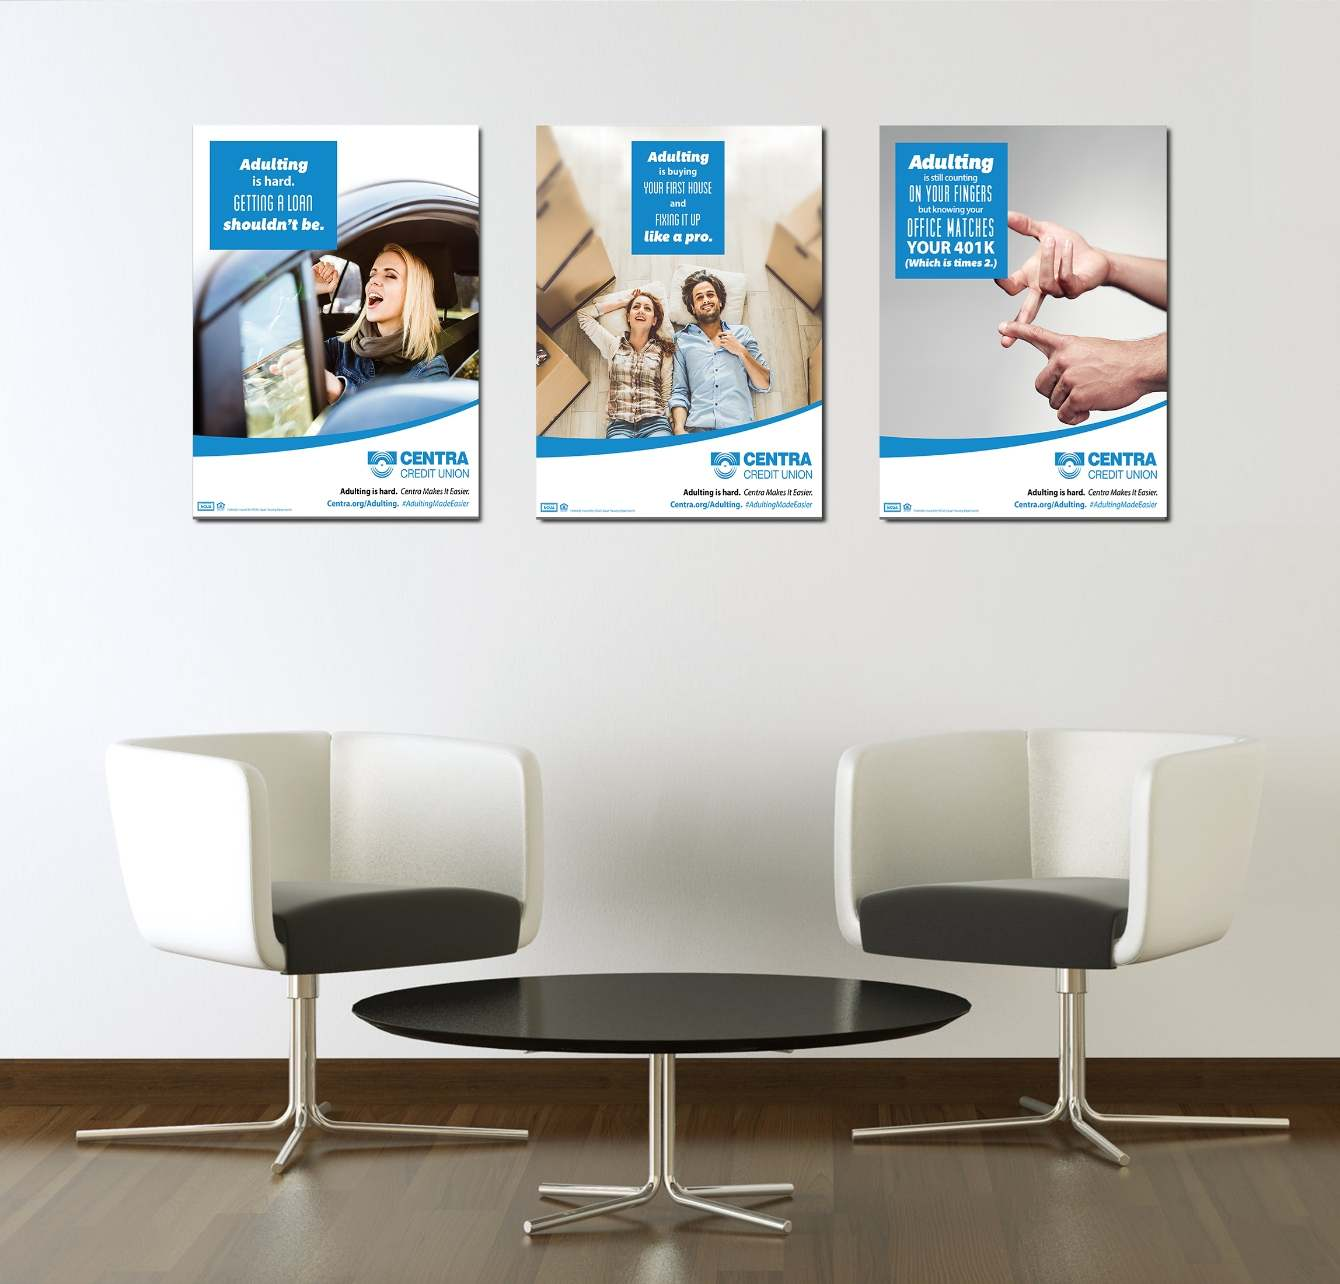 Centra Credit Union advertising posters above table and chairs.